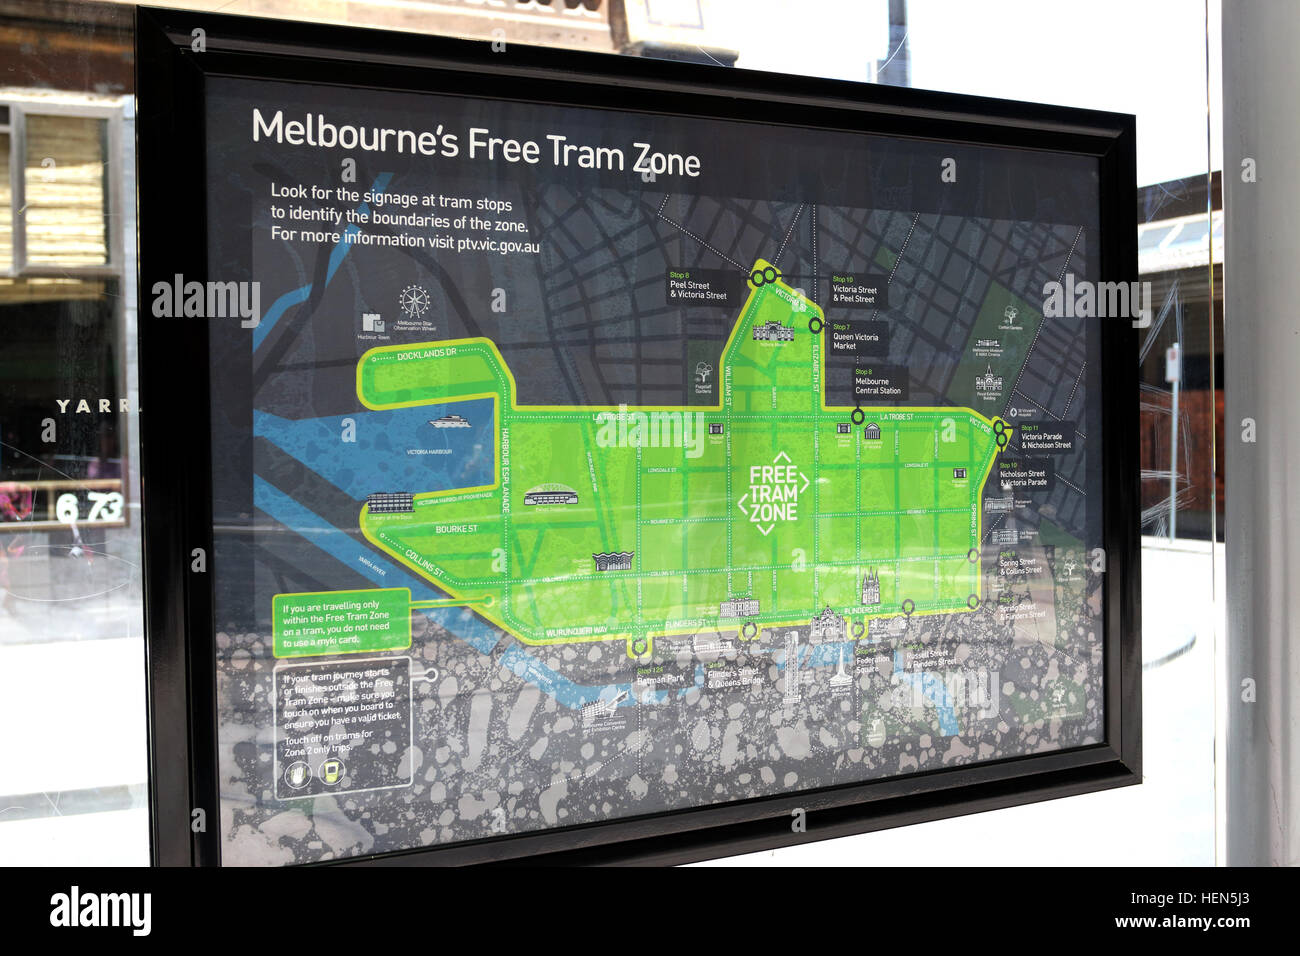 Melbournes free tram zone information at Southern Cross station